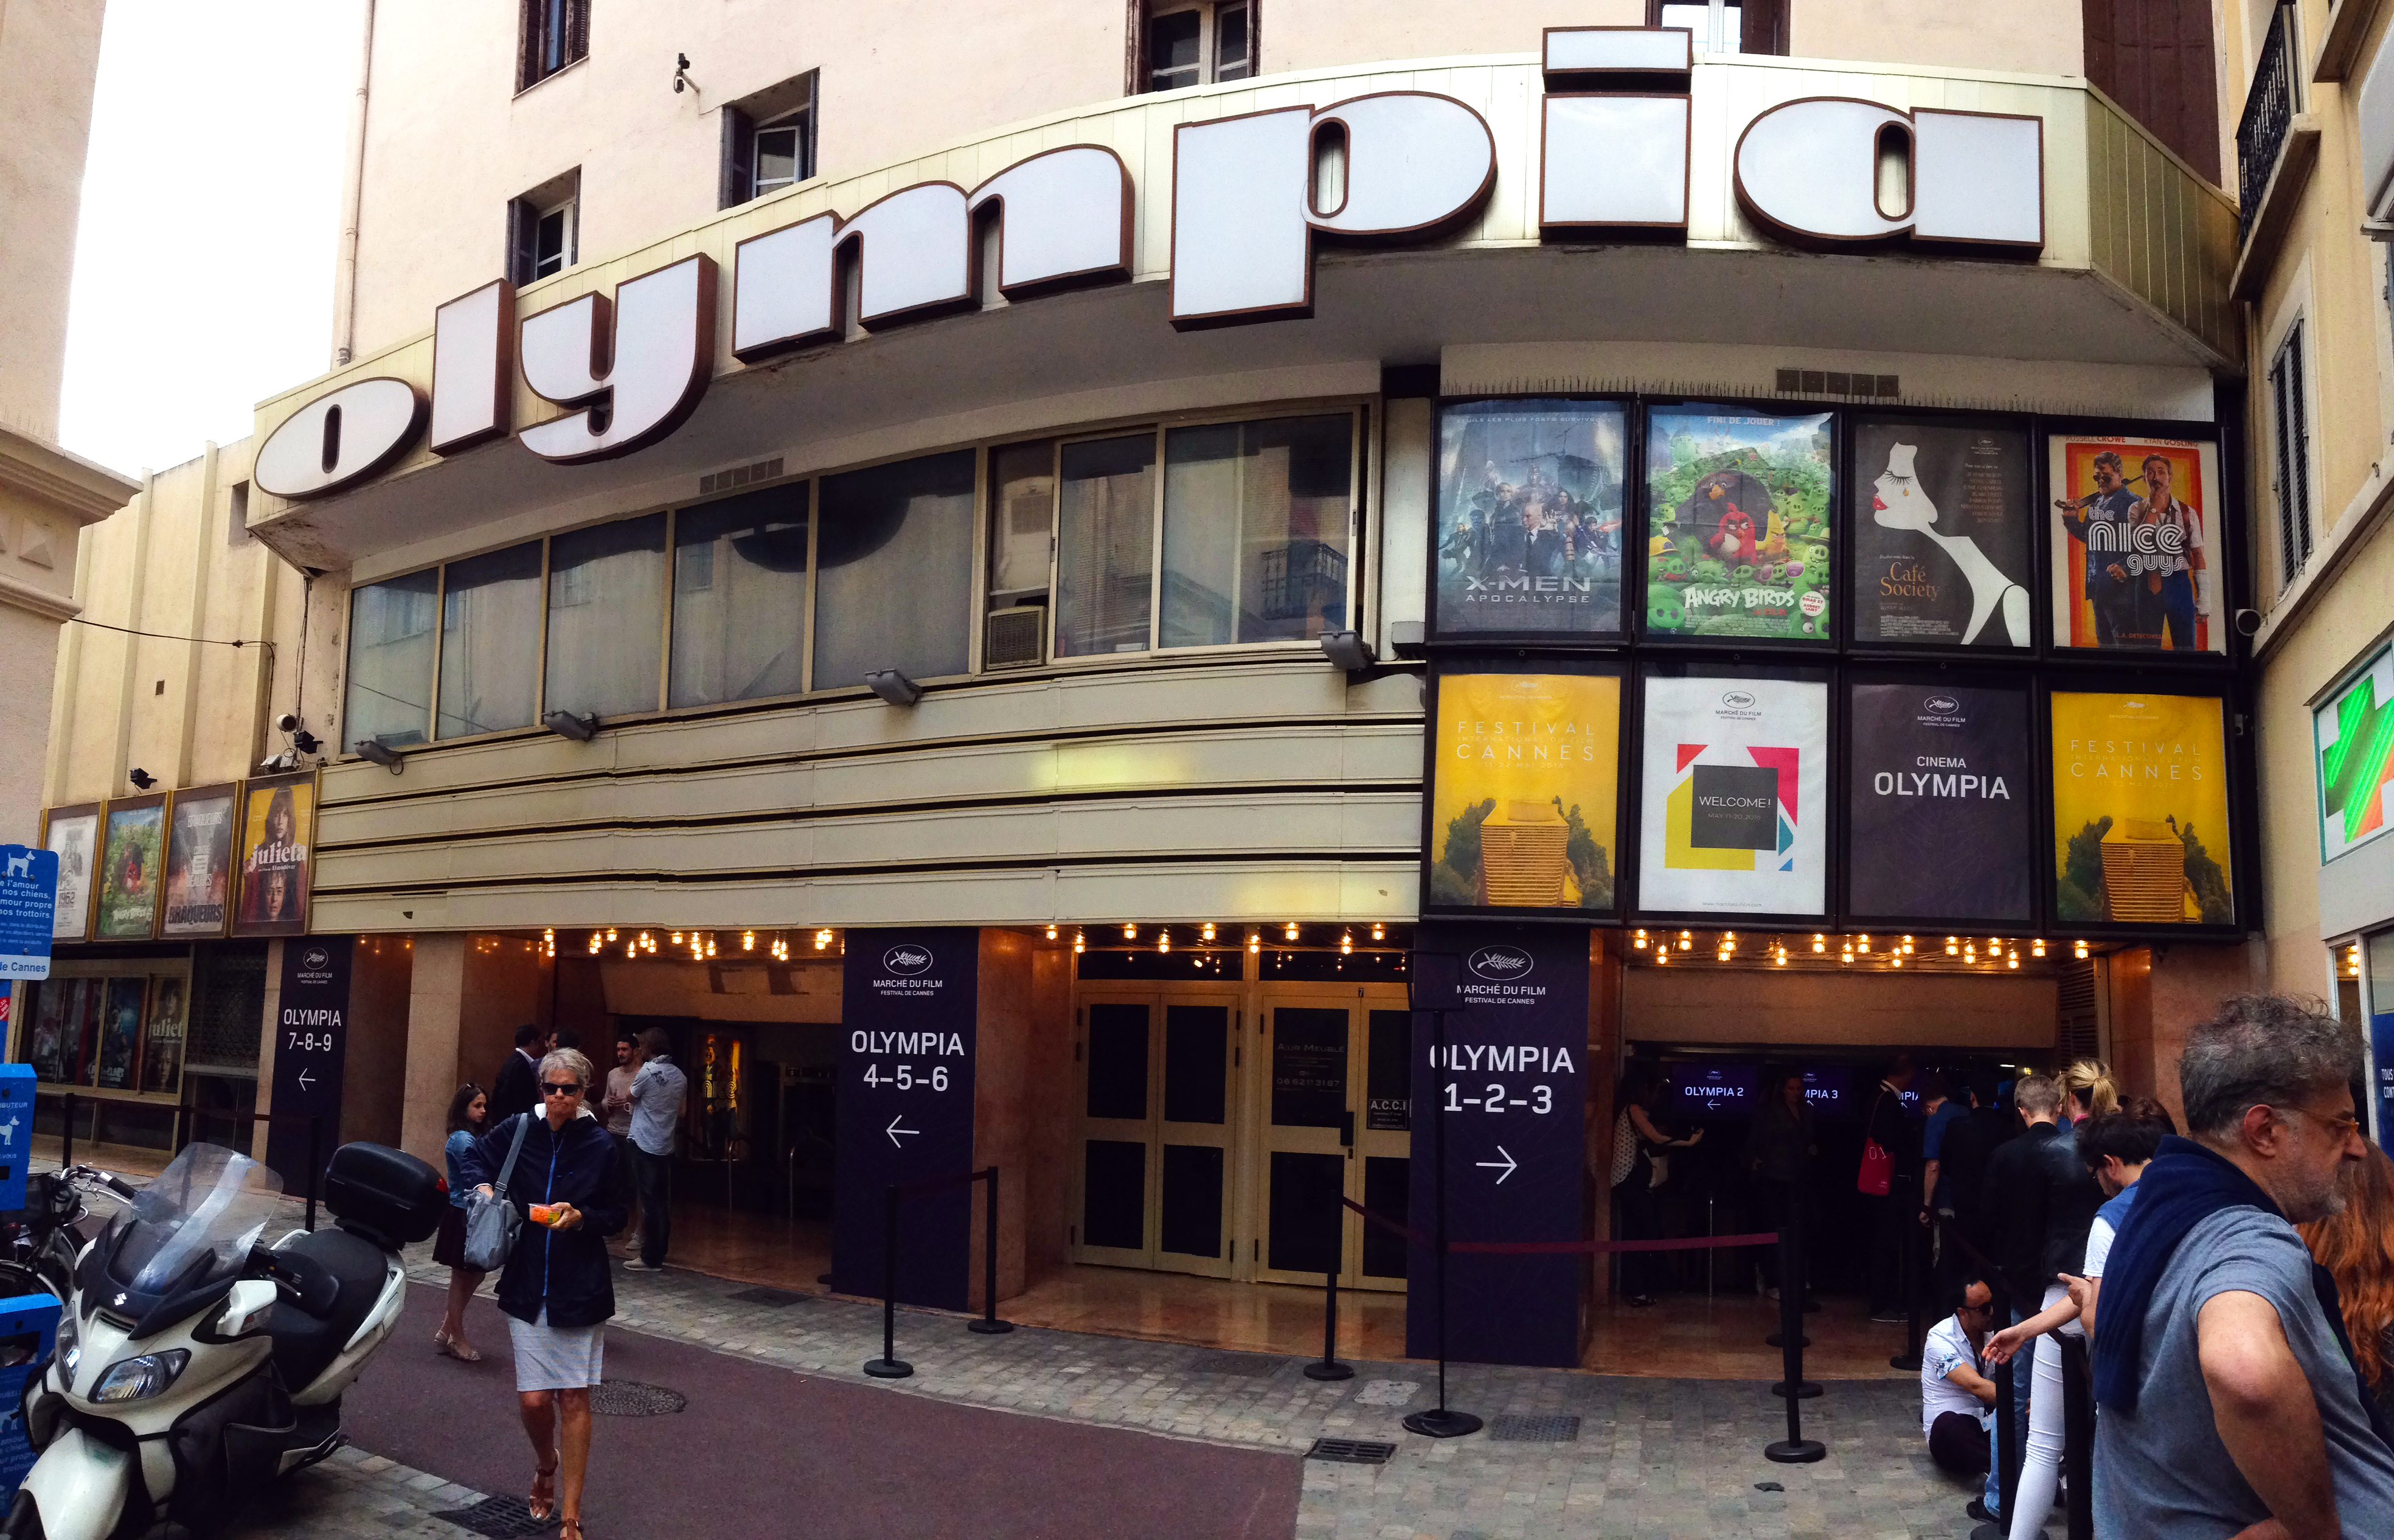 Cinéma Olympia in Cannes, France during the Marche du Film